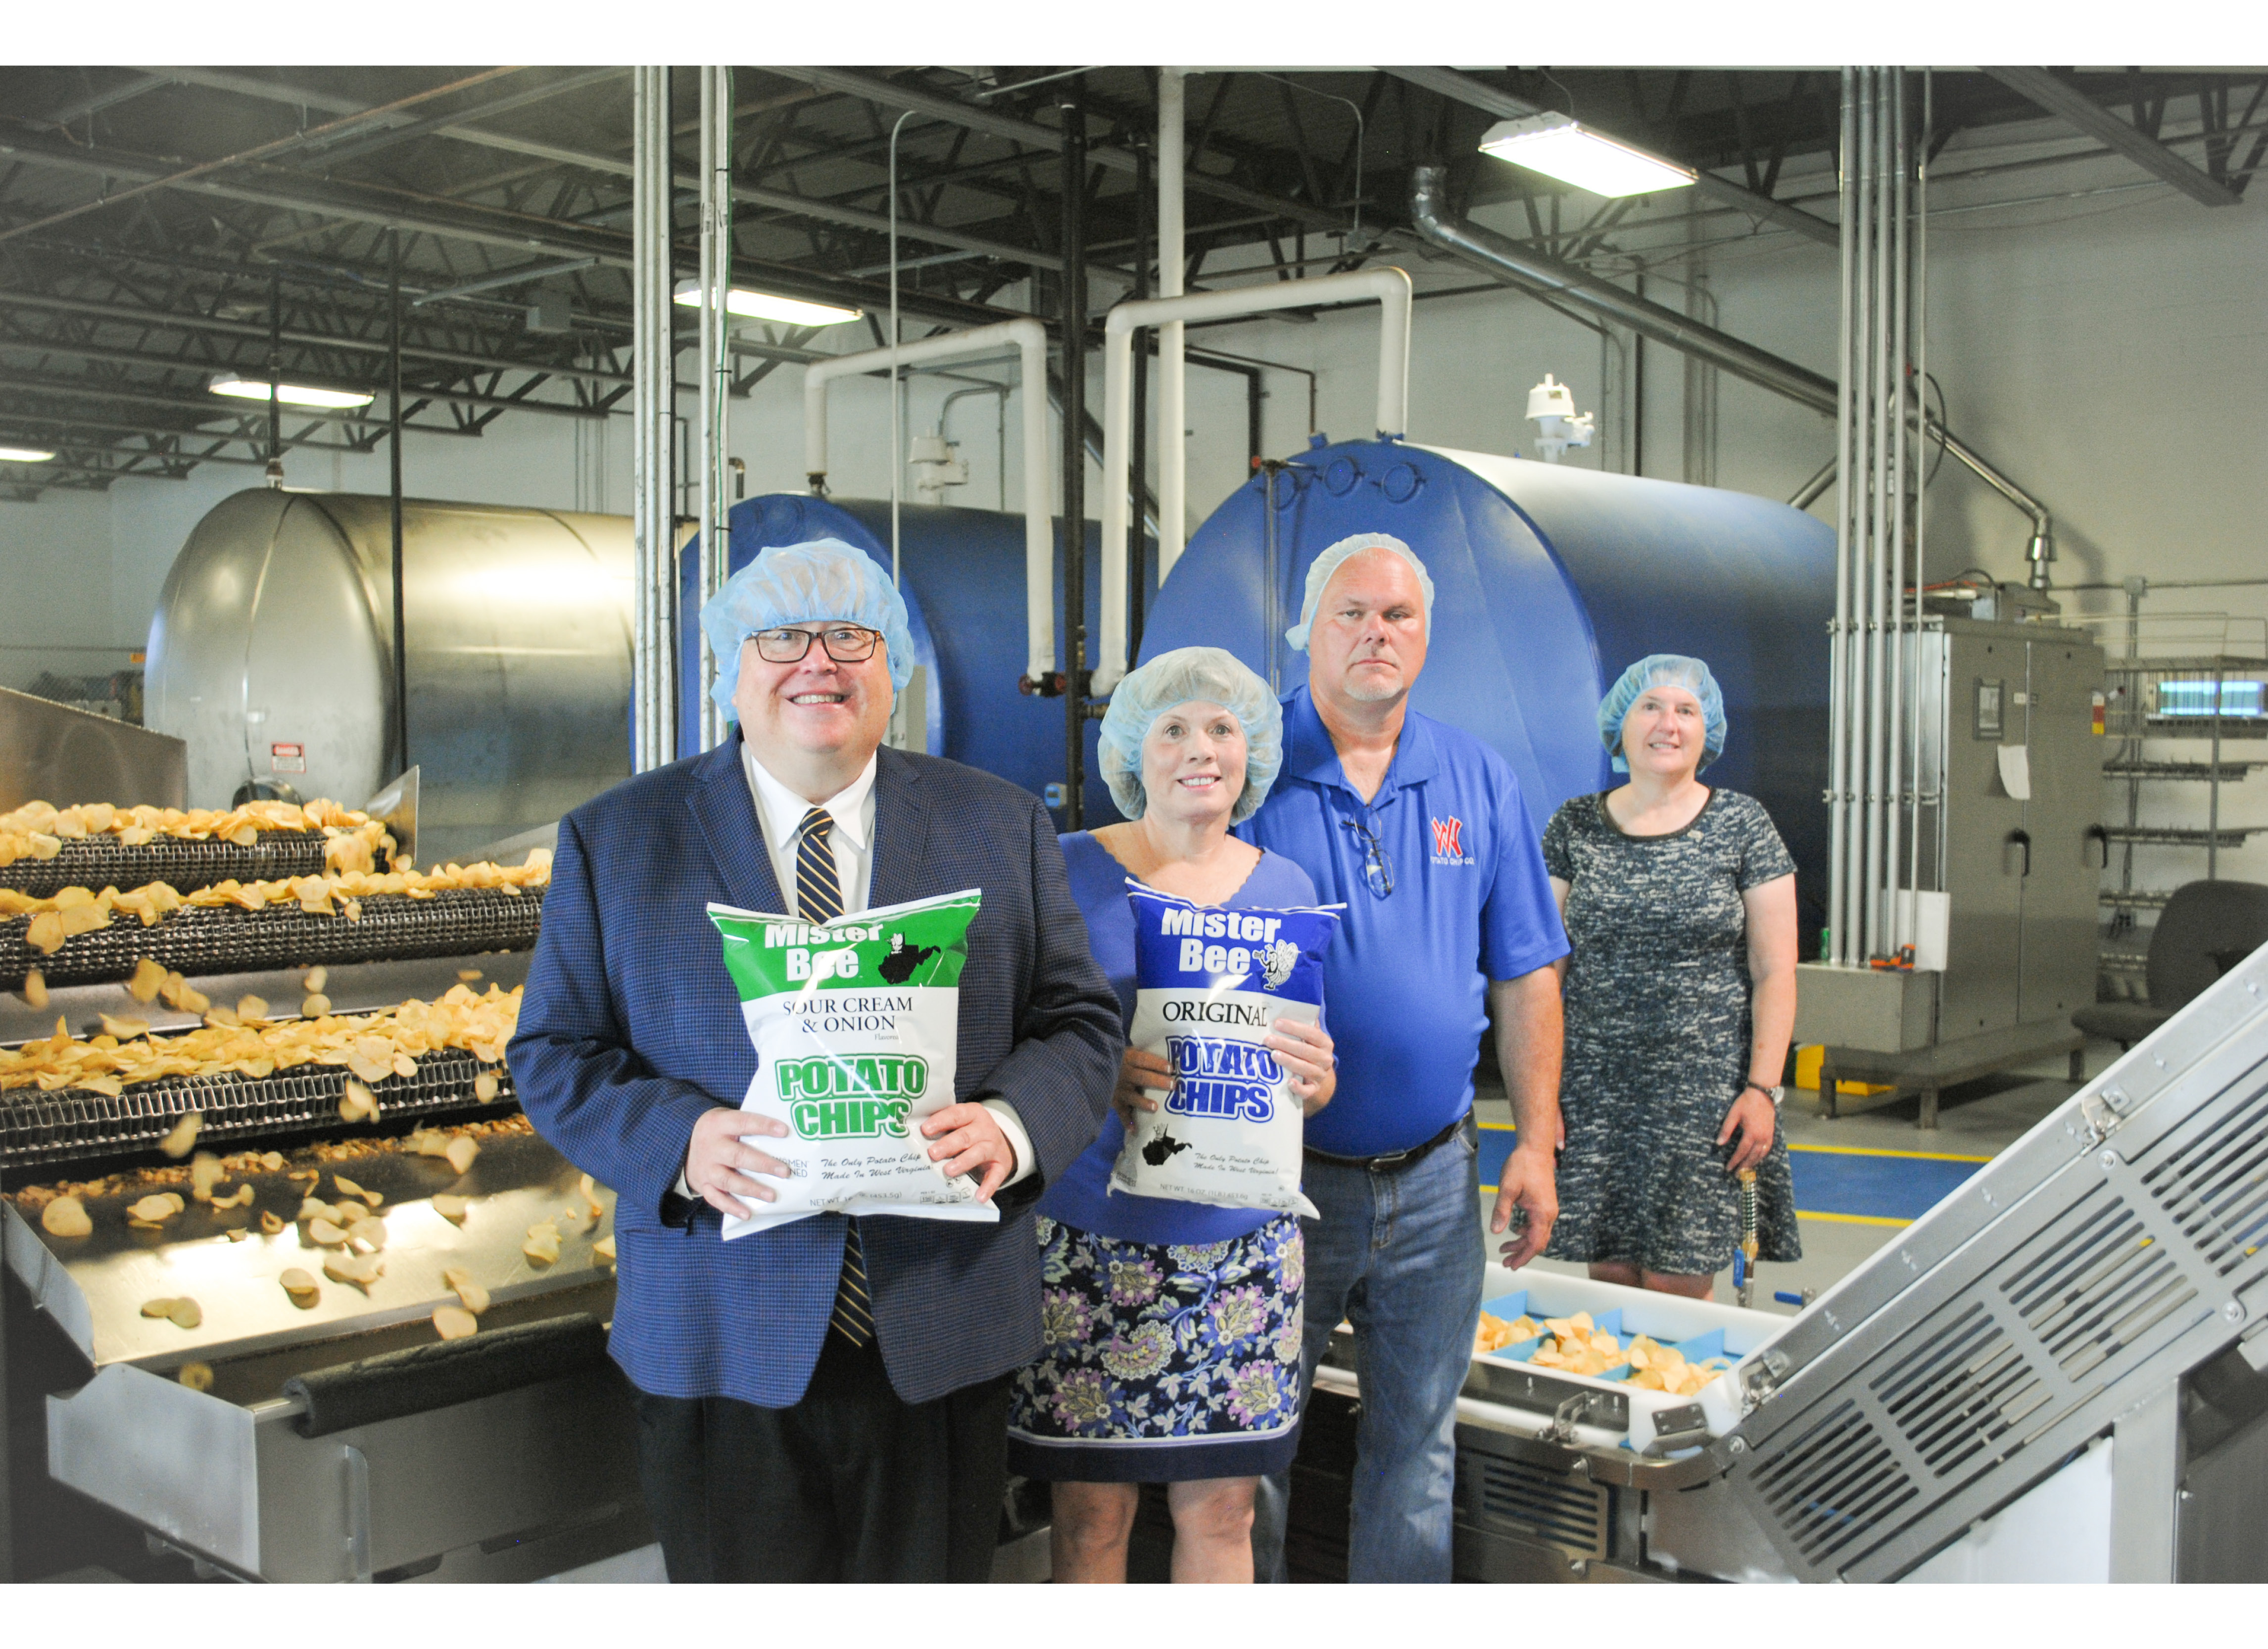 WVU Parkersburg forms partnership with the West Virginia Potato Chip Company, Mister Bee Potato Chips